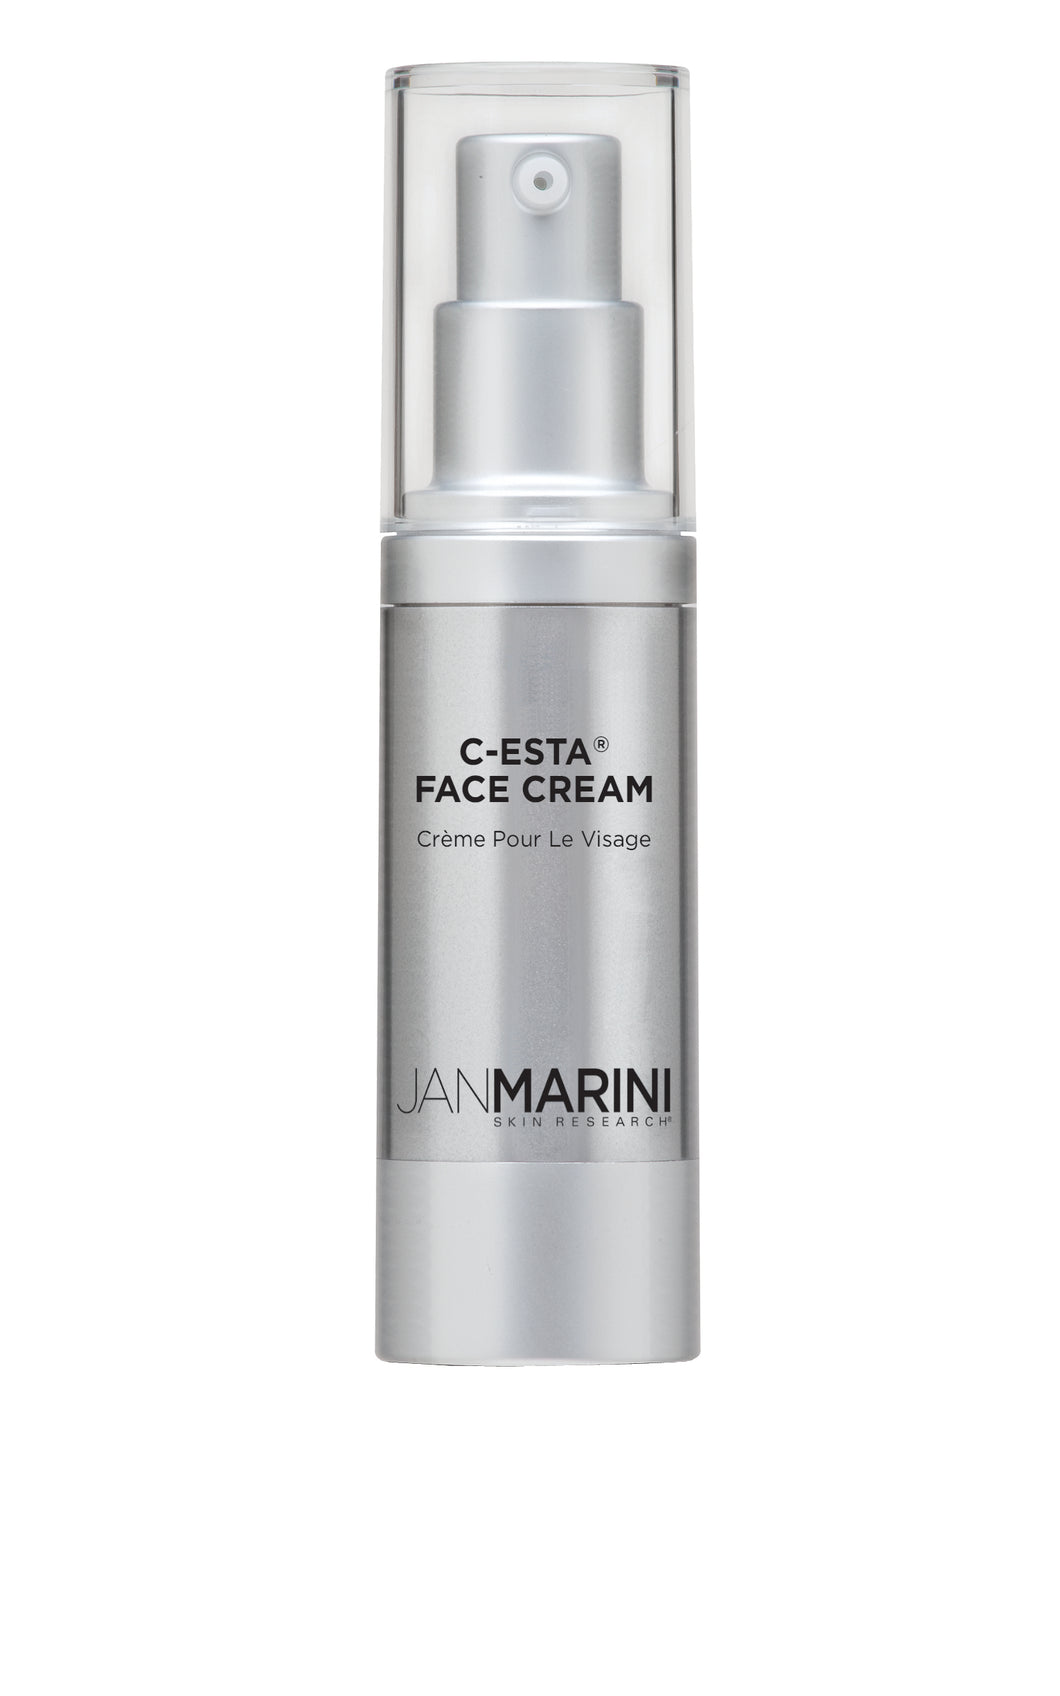 C-ESTA® Face Cream